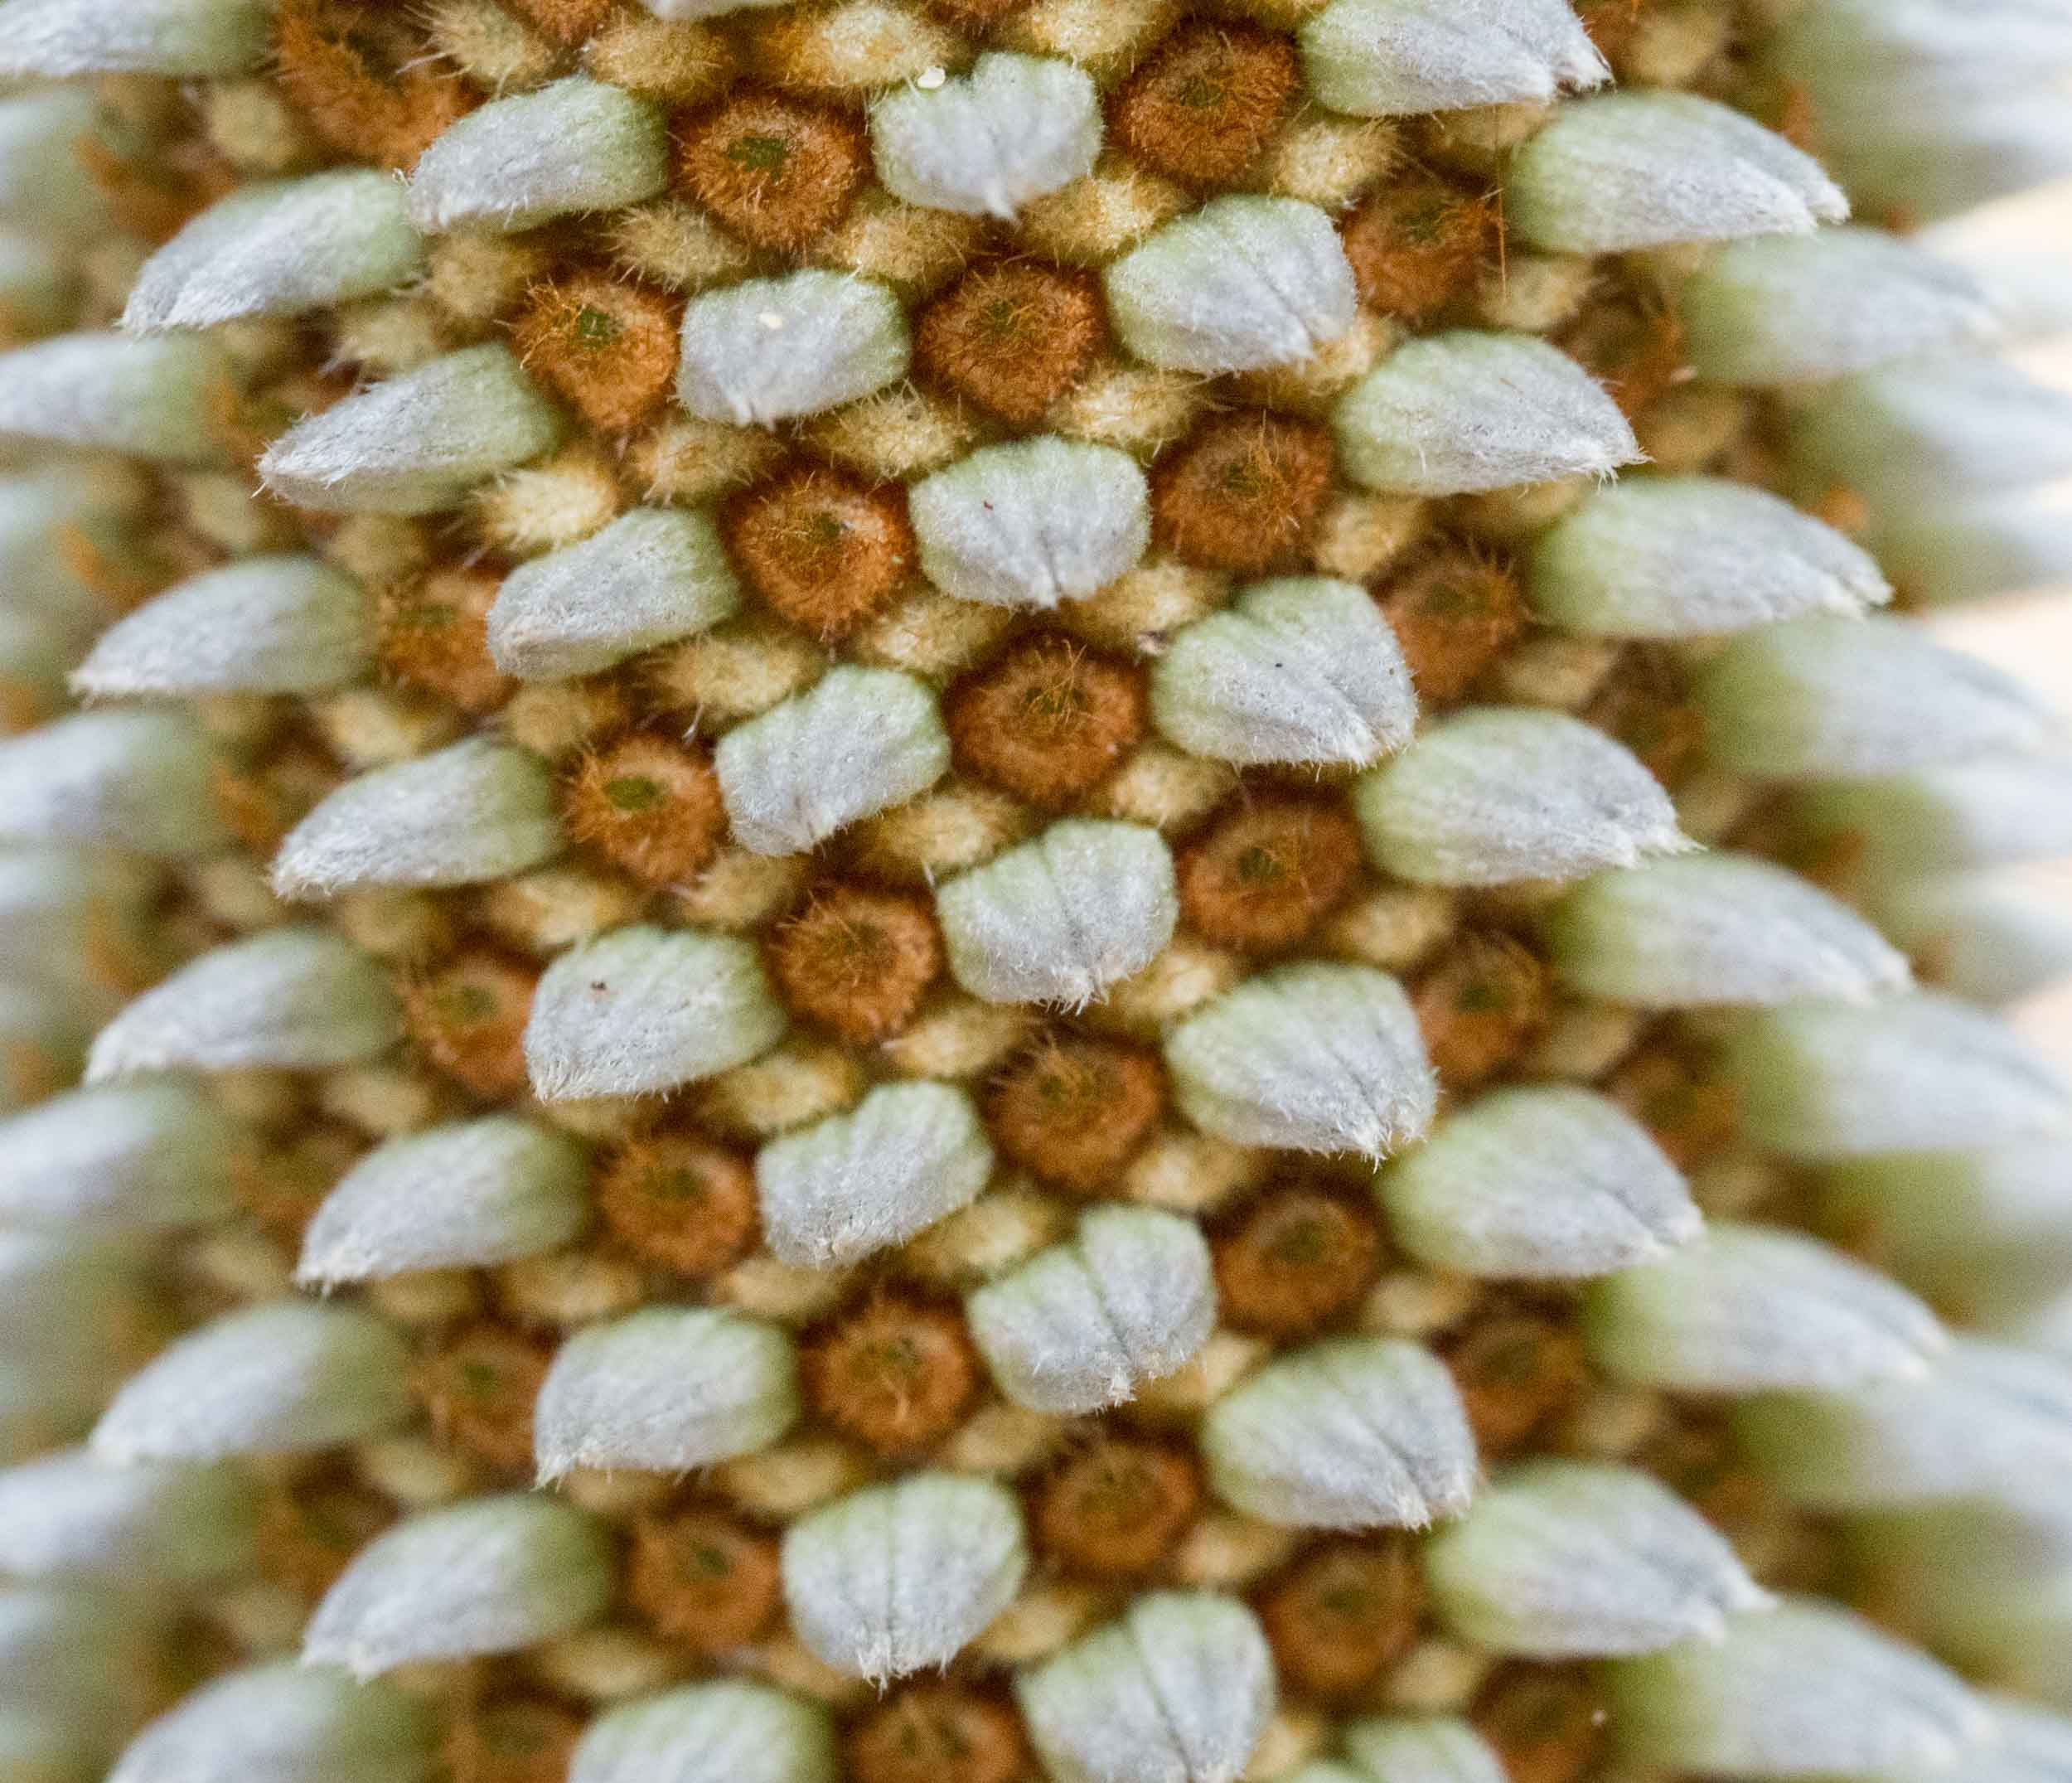 This close-up of the spike shows the protruding flower heads.